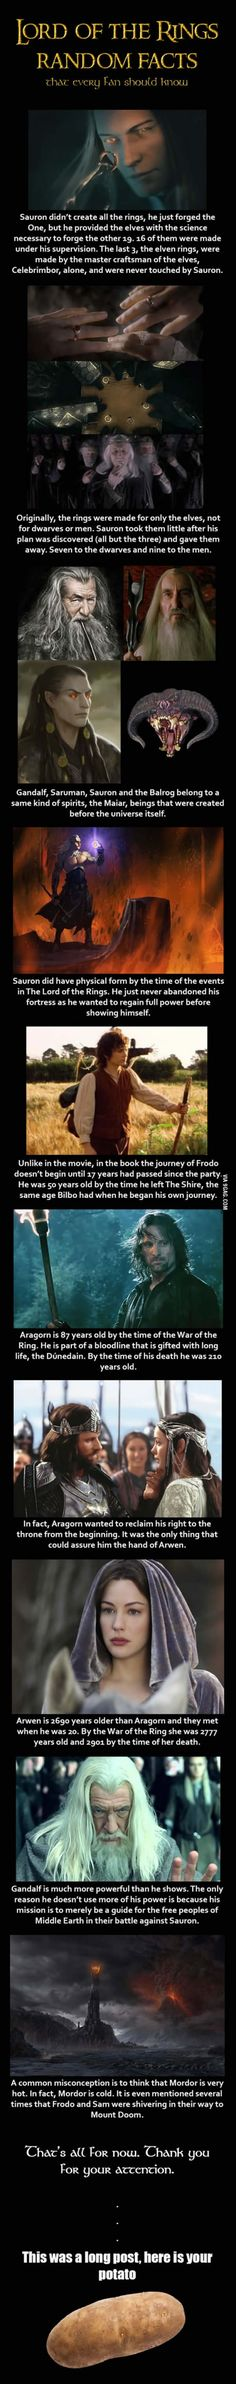 Here are some Lord of the Rings random facts, a few of which I actually was not aware of.